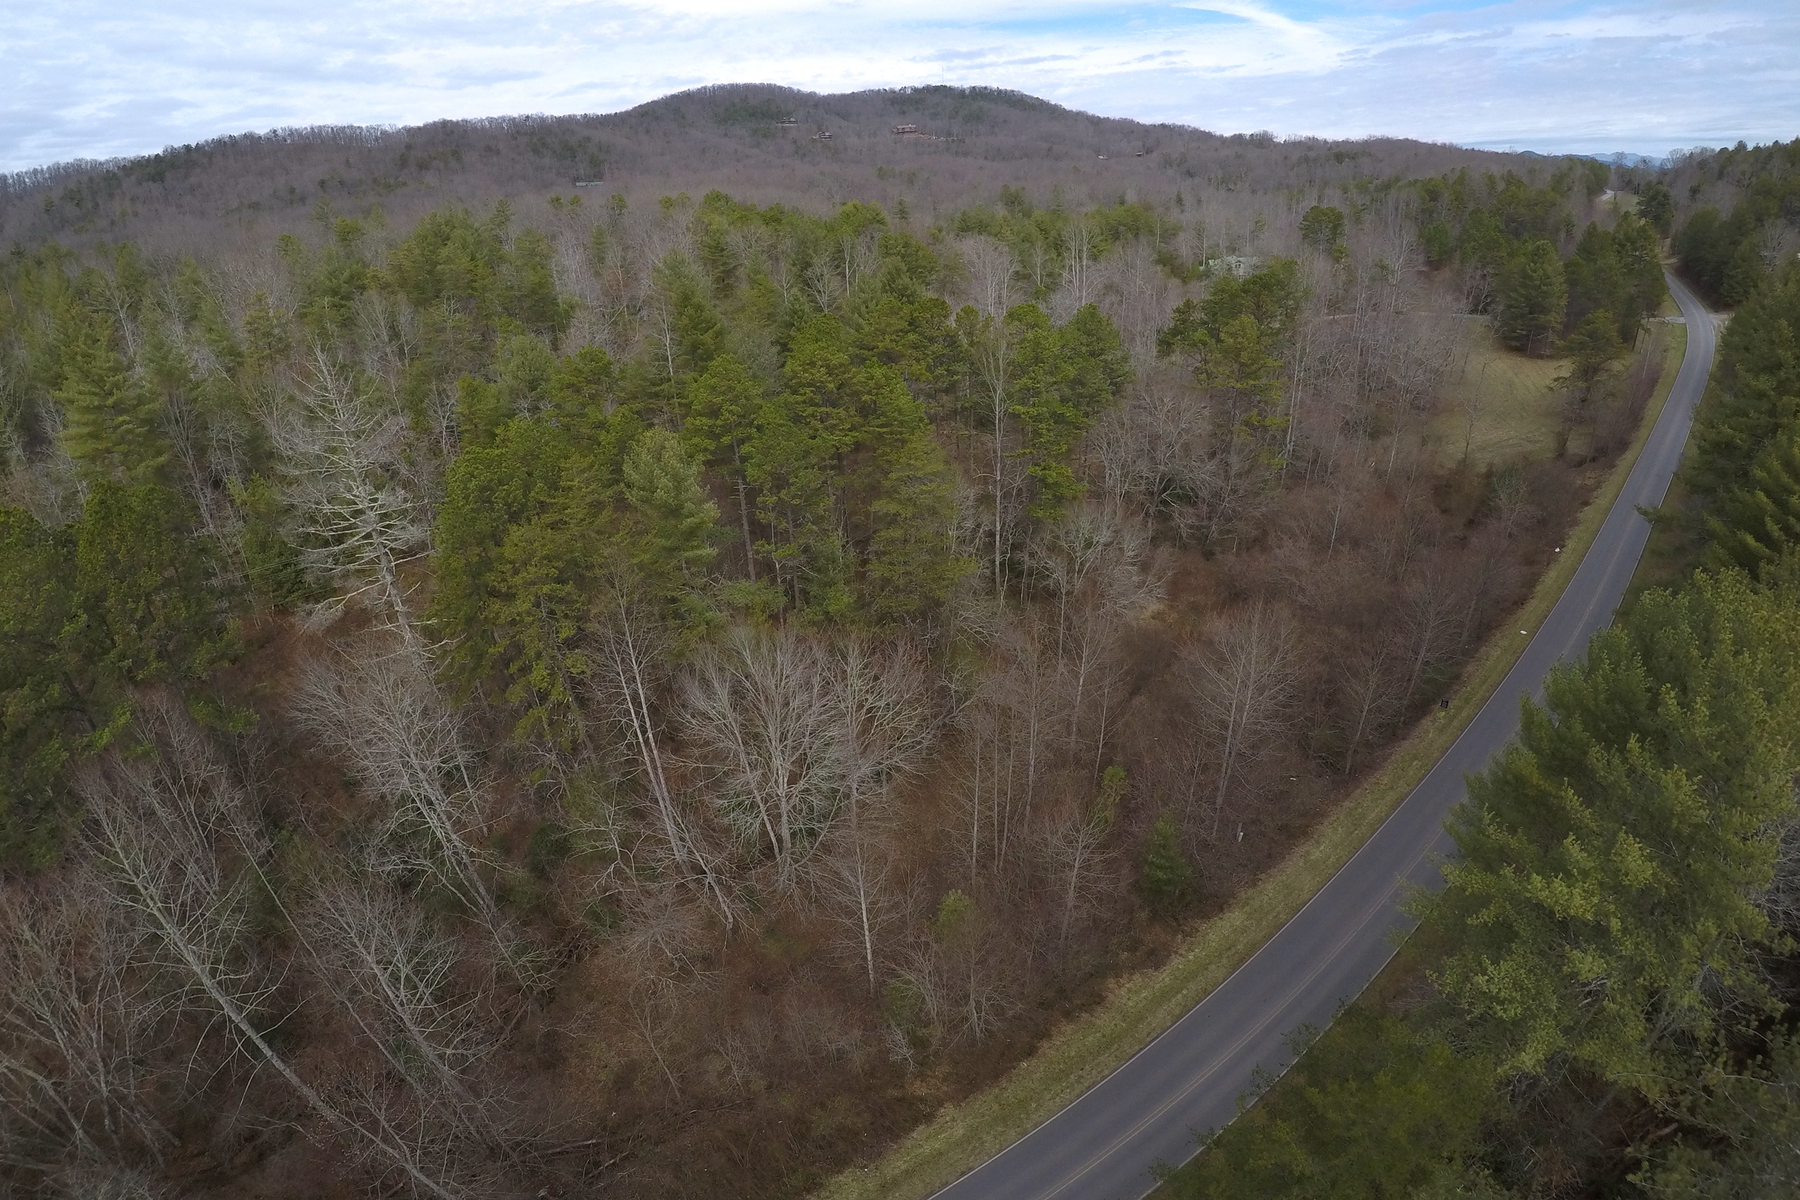 Terreno por un Venta en Beautiful Mountain Acreage with Long Range Views 0 Hardscrabble Road Mineral Bluff, Georgia 30559 Estados Unidos